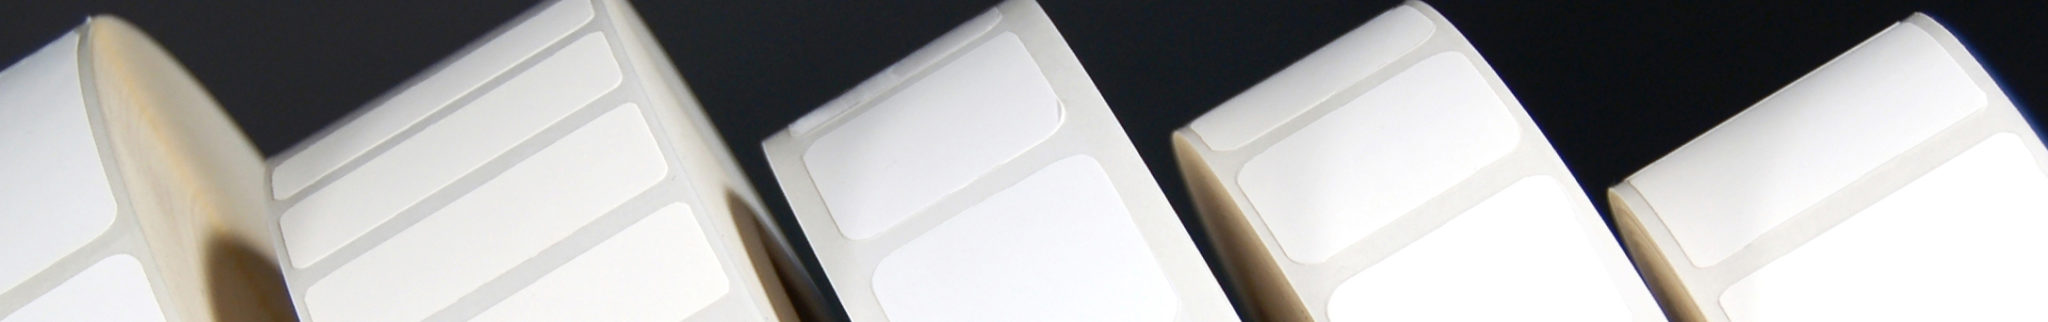 Rolls of assorted white blank labels